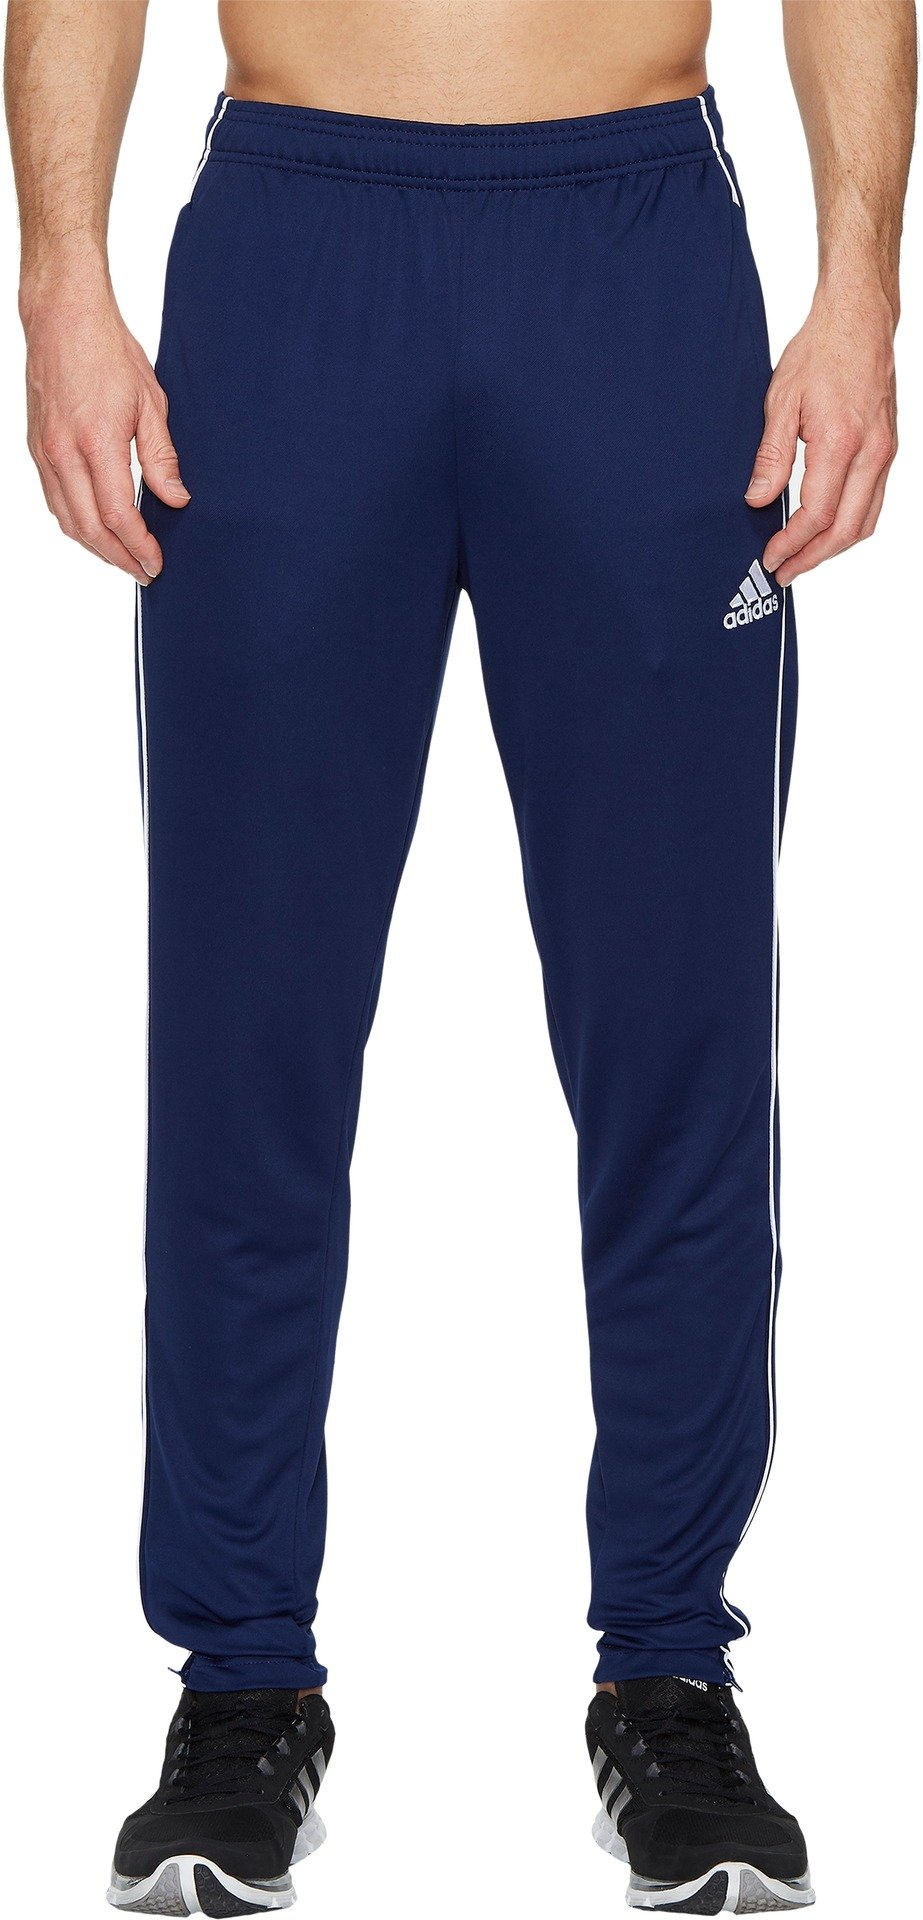 adidas Men's Soccer Core 18 Training Pants, Dark Blue/White, Large